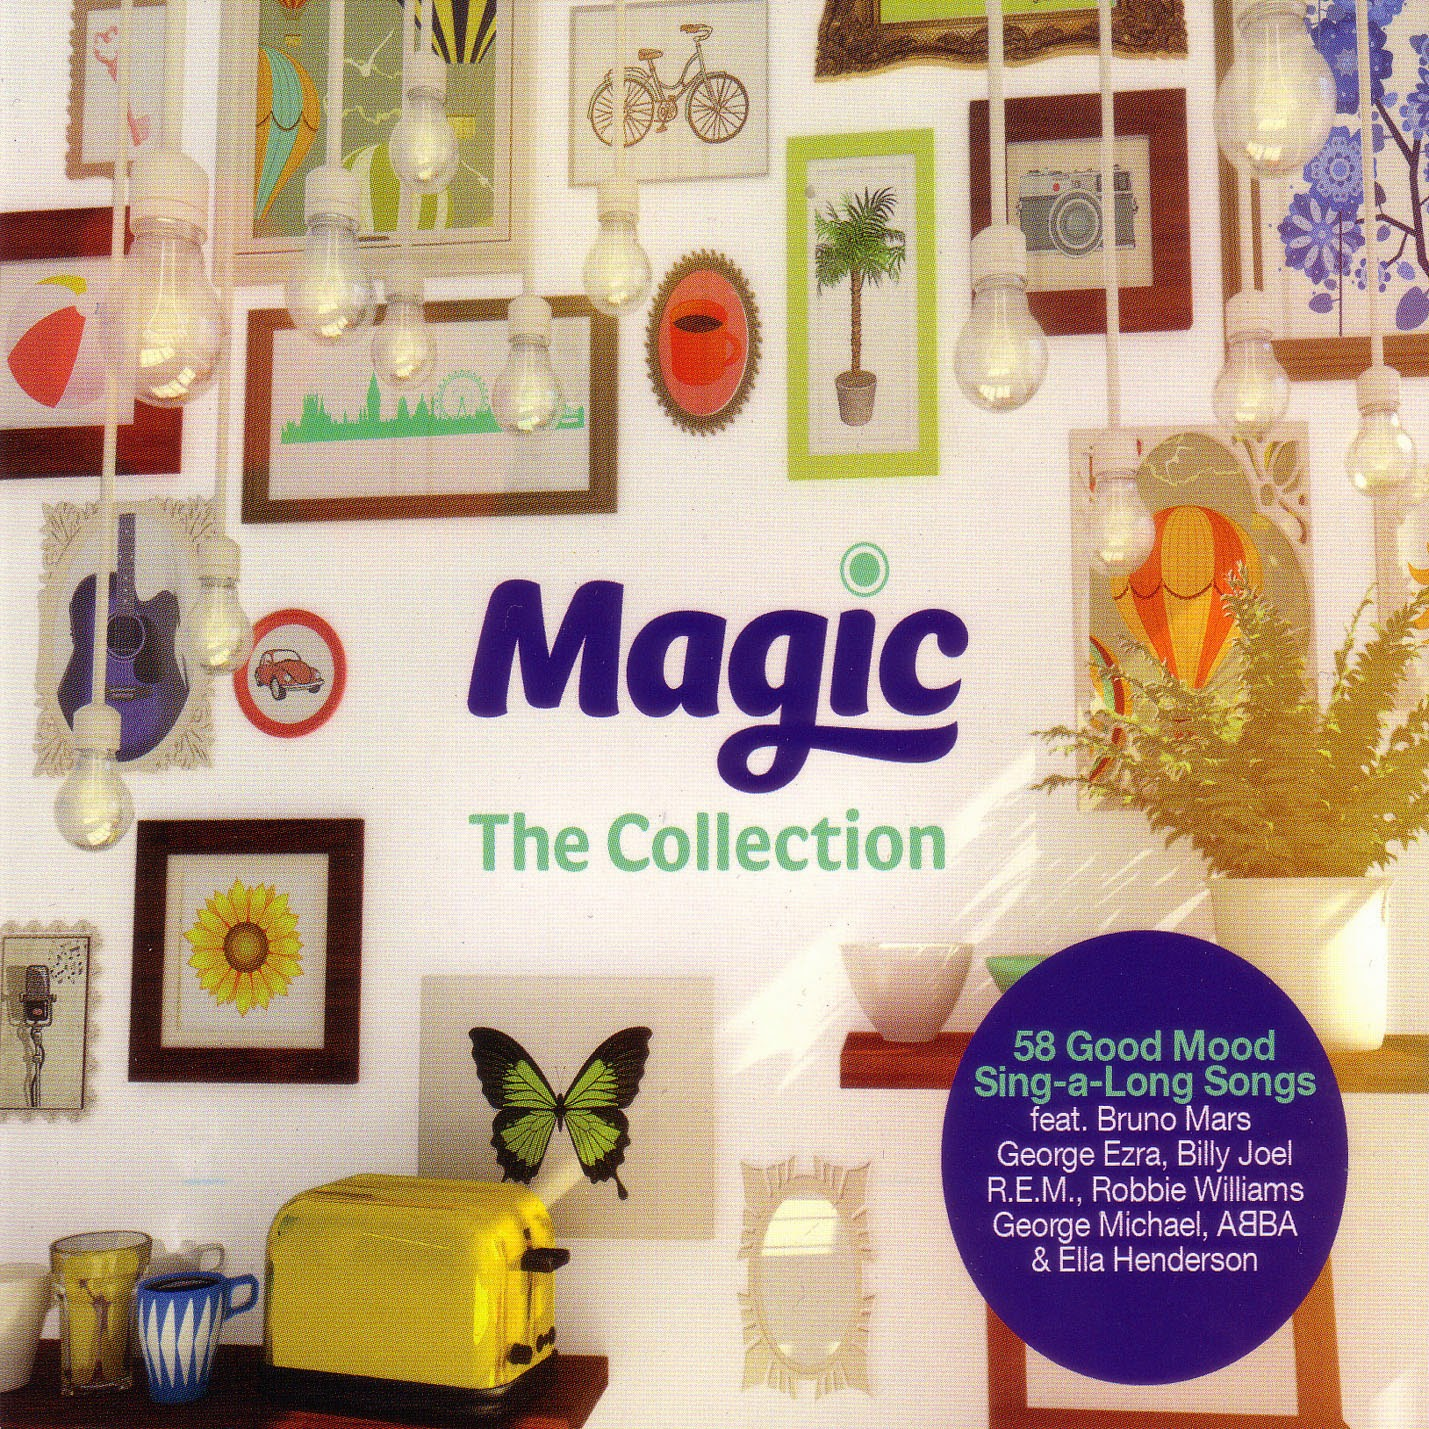 Download [Mp3]-[Hit Music] เพลงสากลฟังสบาย ในแบบ VA – Magic The Collection (2015) @320kbps [Solidfiles] 4shared By Pleng-mun.com